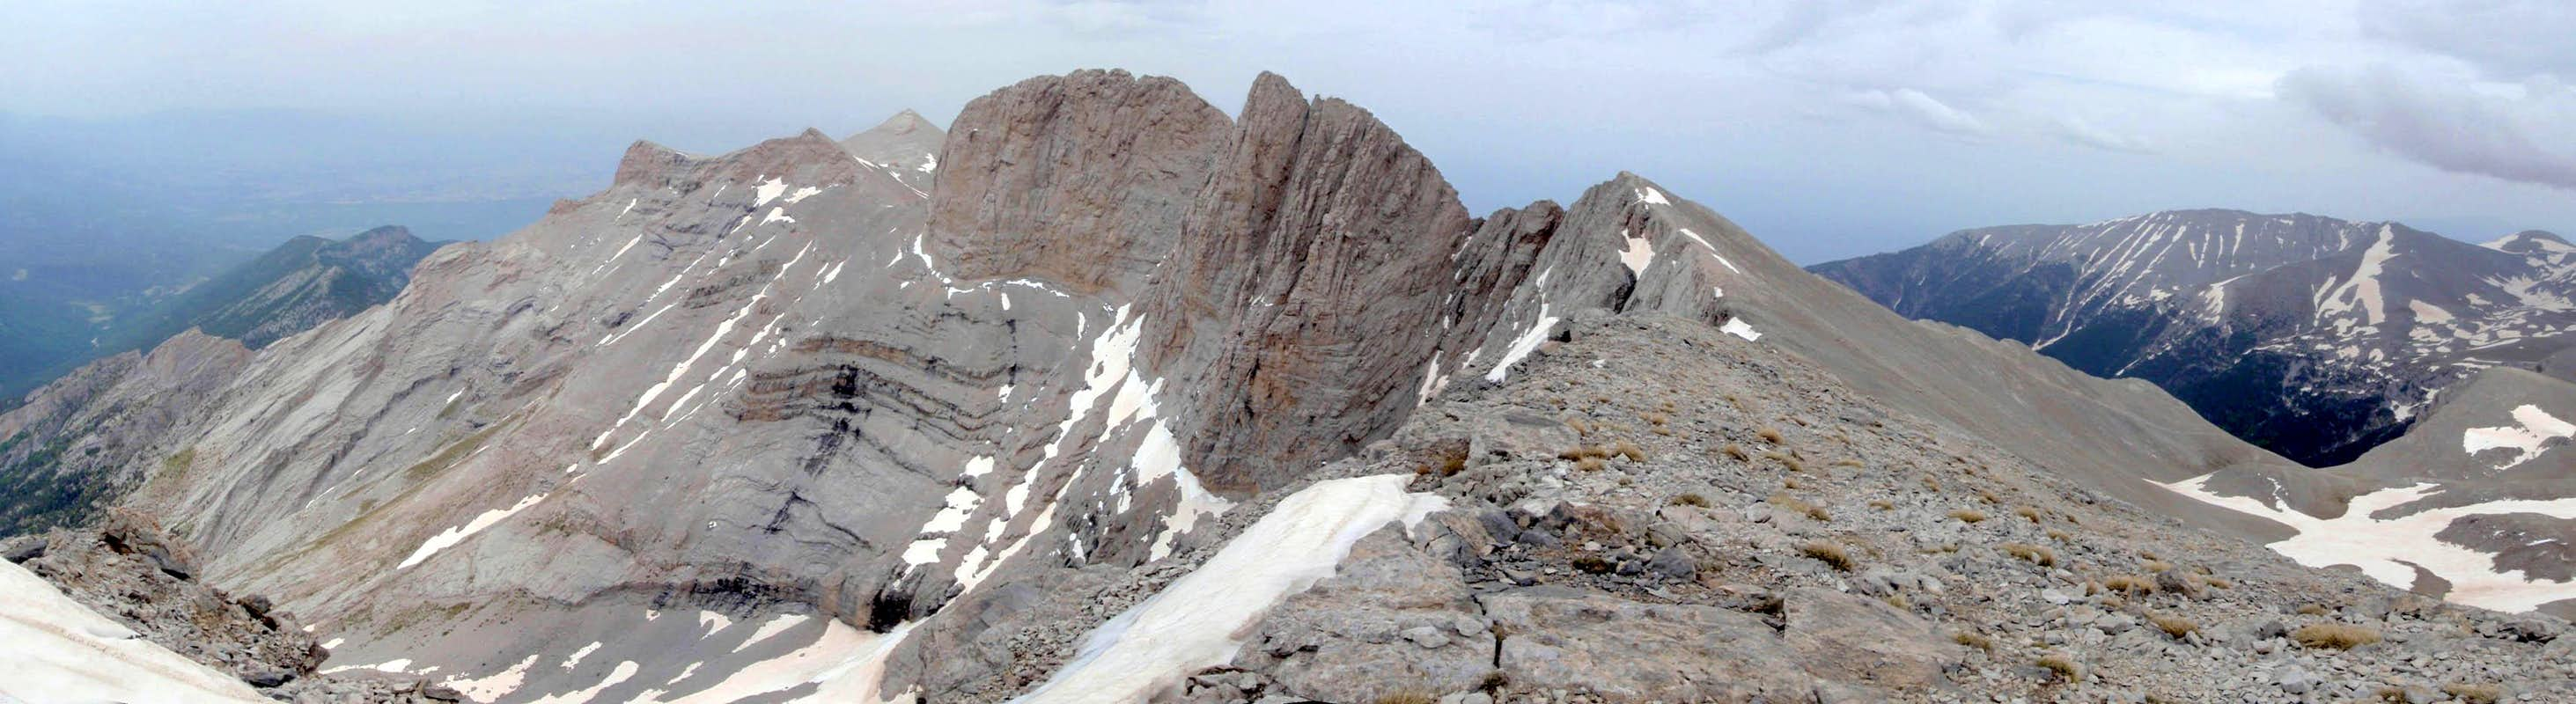 Mount olympus highpoint of greece trip reports summitpost mount olympus panorama sciox Choice Image